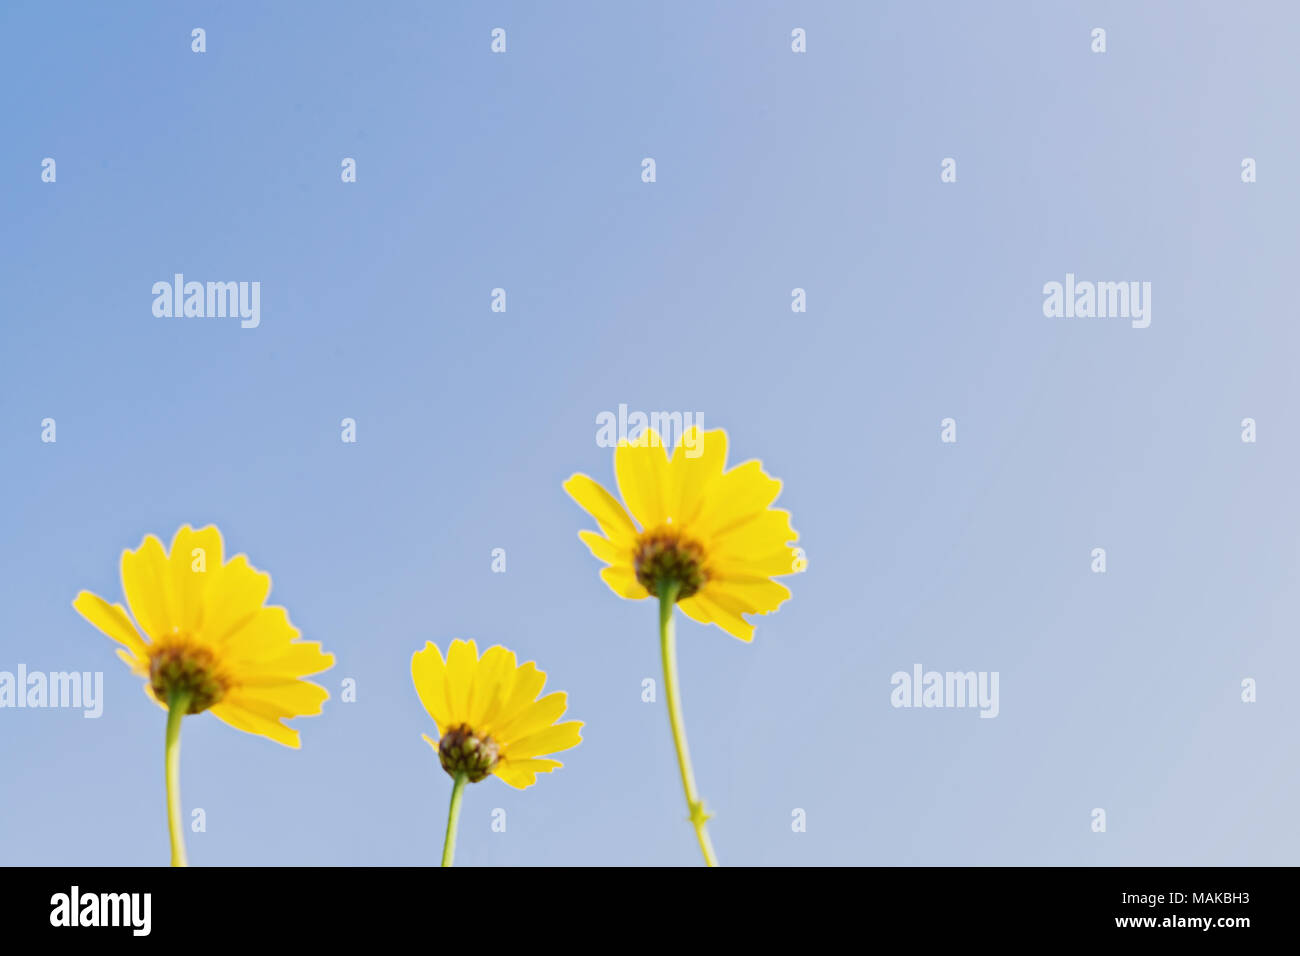 Low Angle View Of Three Blurred Shape Yellow Flowers On Blue Sky